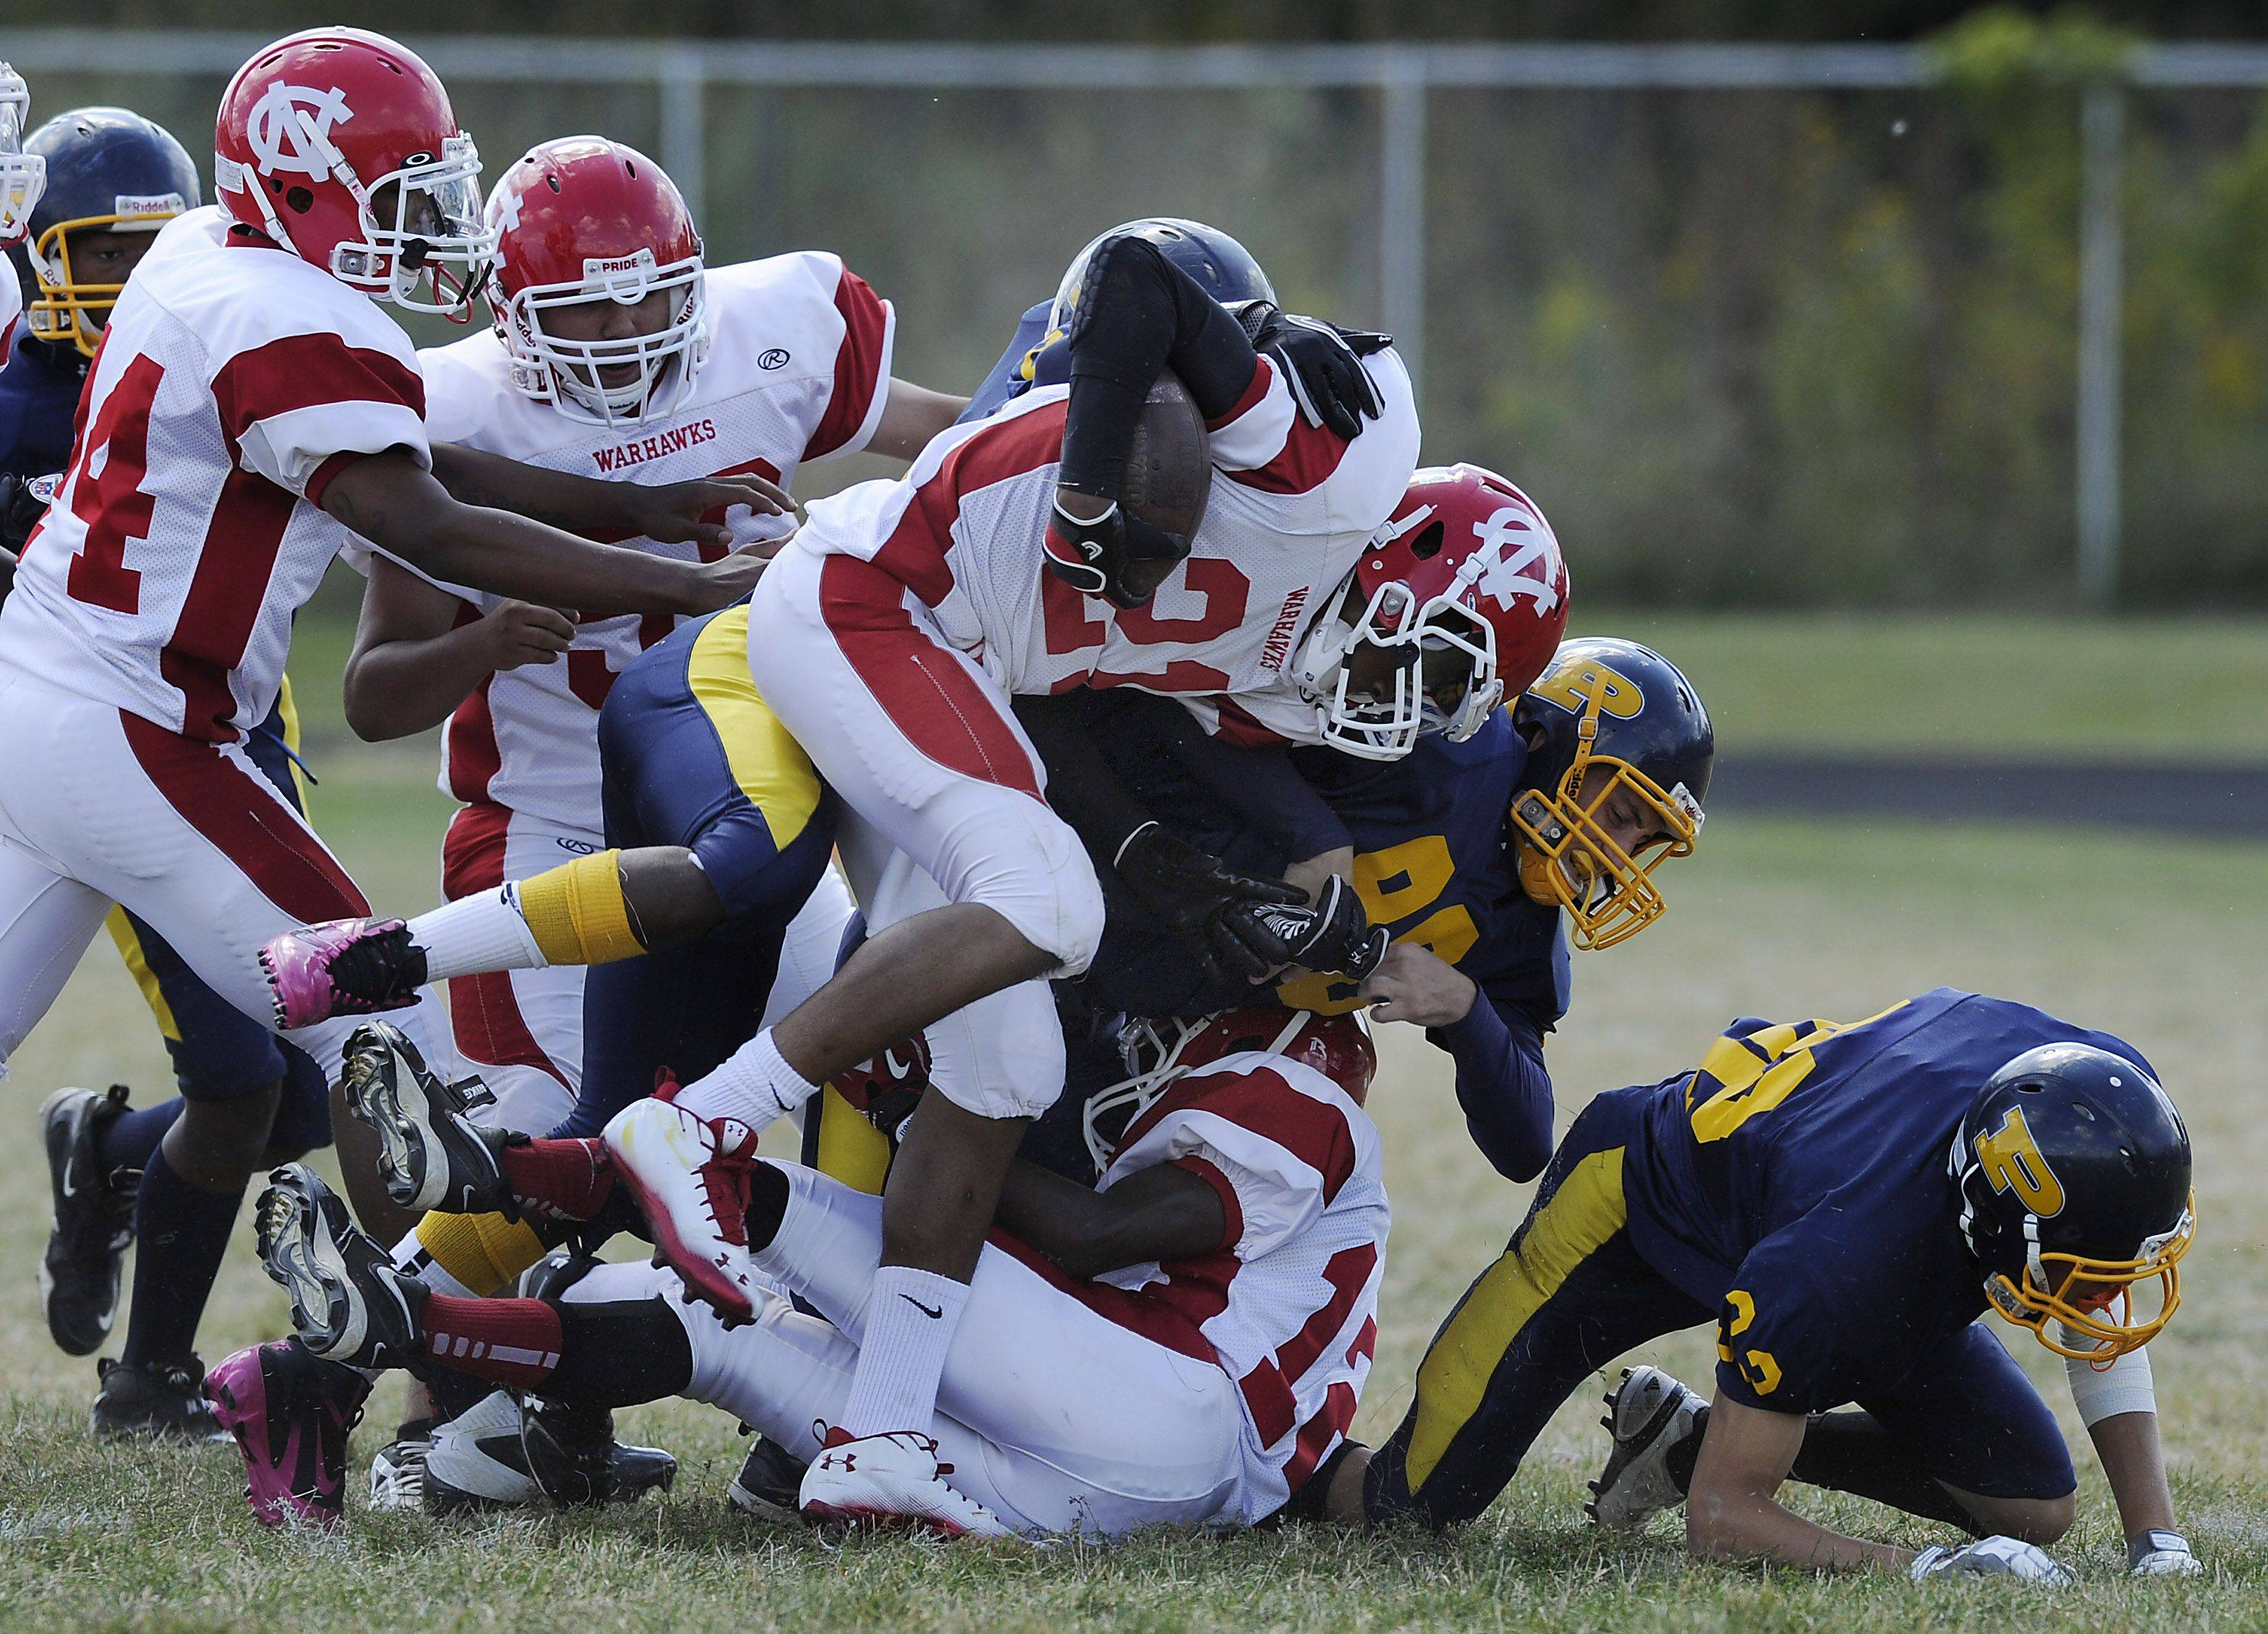 North Chicago's Manros Nickens plows over Round Lake's defense in the first quarter for major yardage in their matchup on Saturday at Round Lake High School.